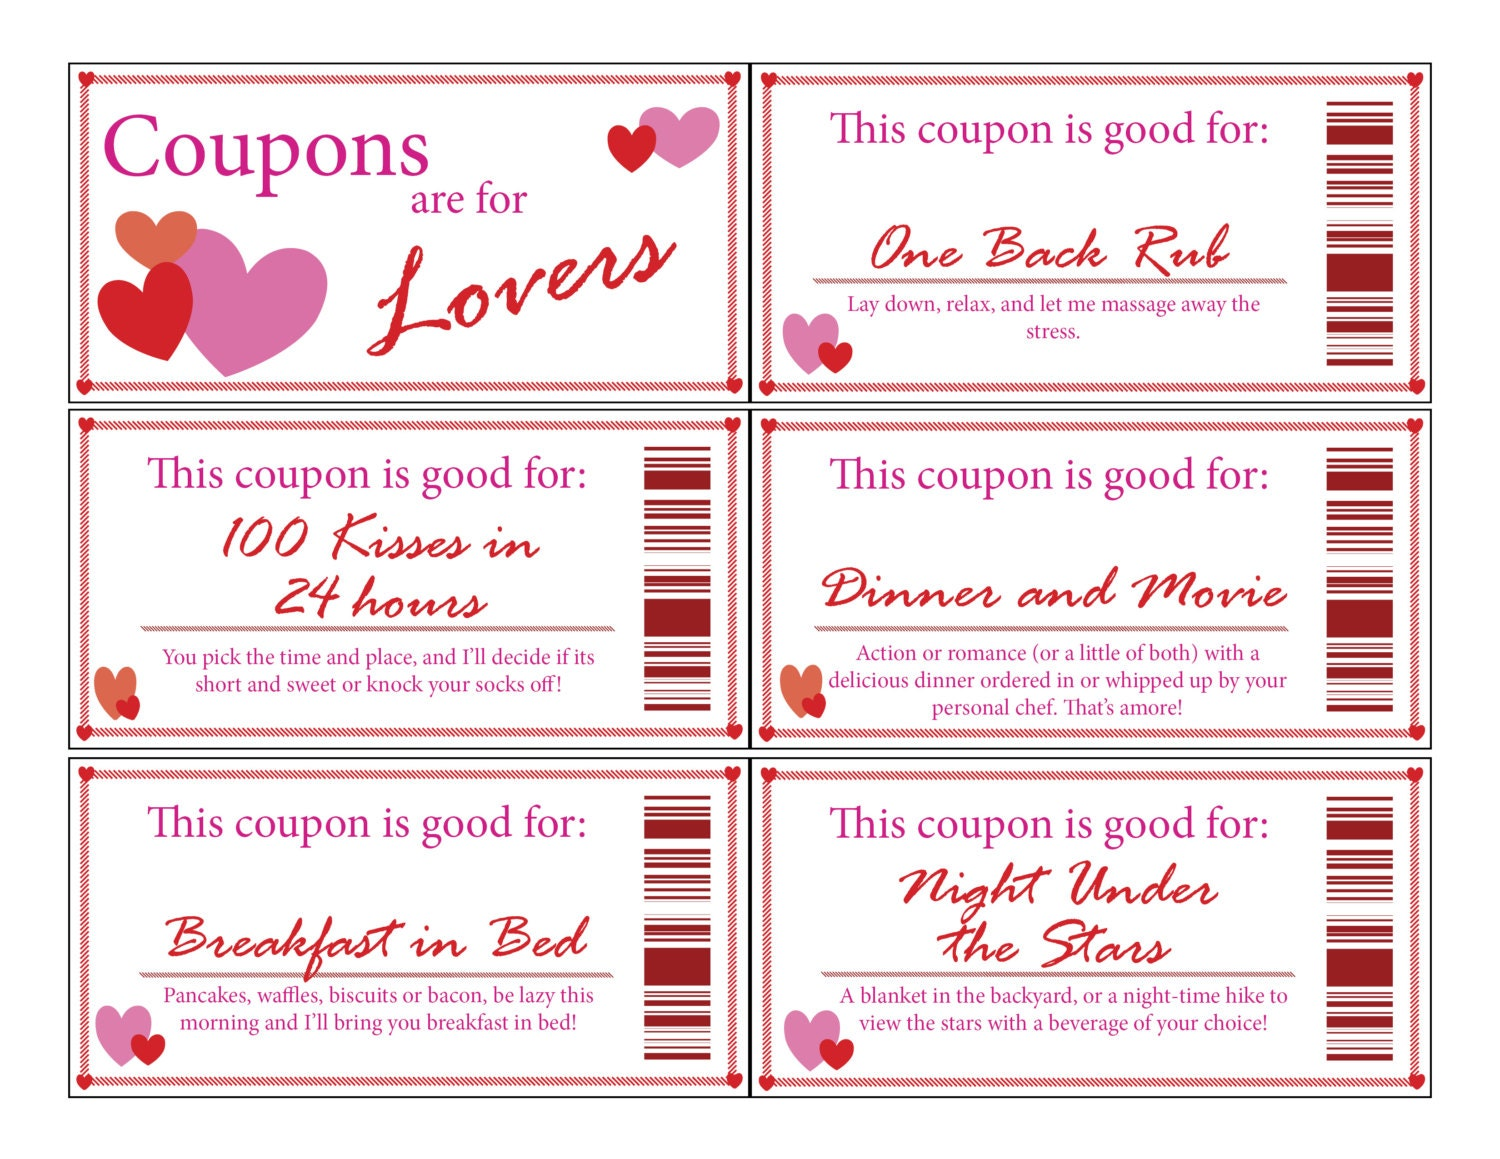 Massage coupons for him